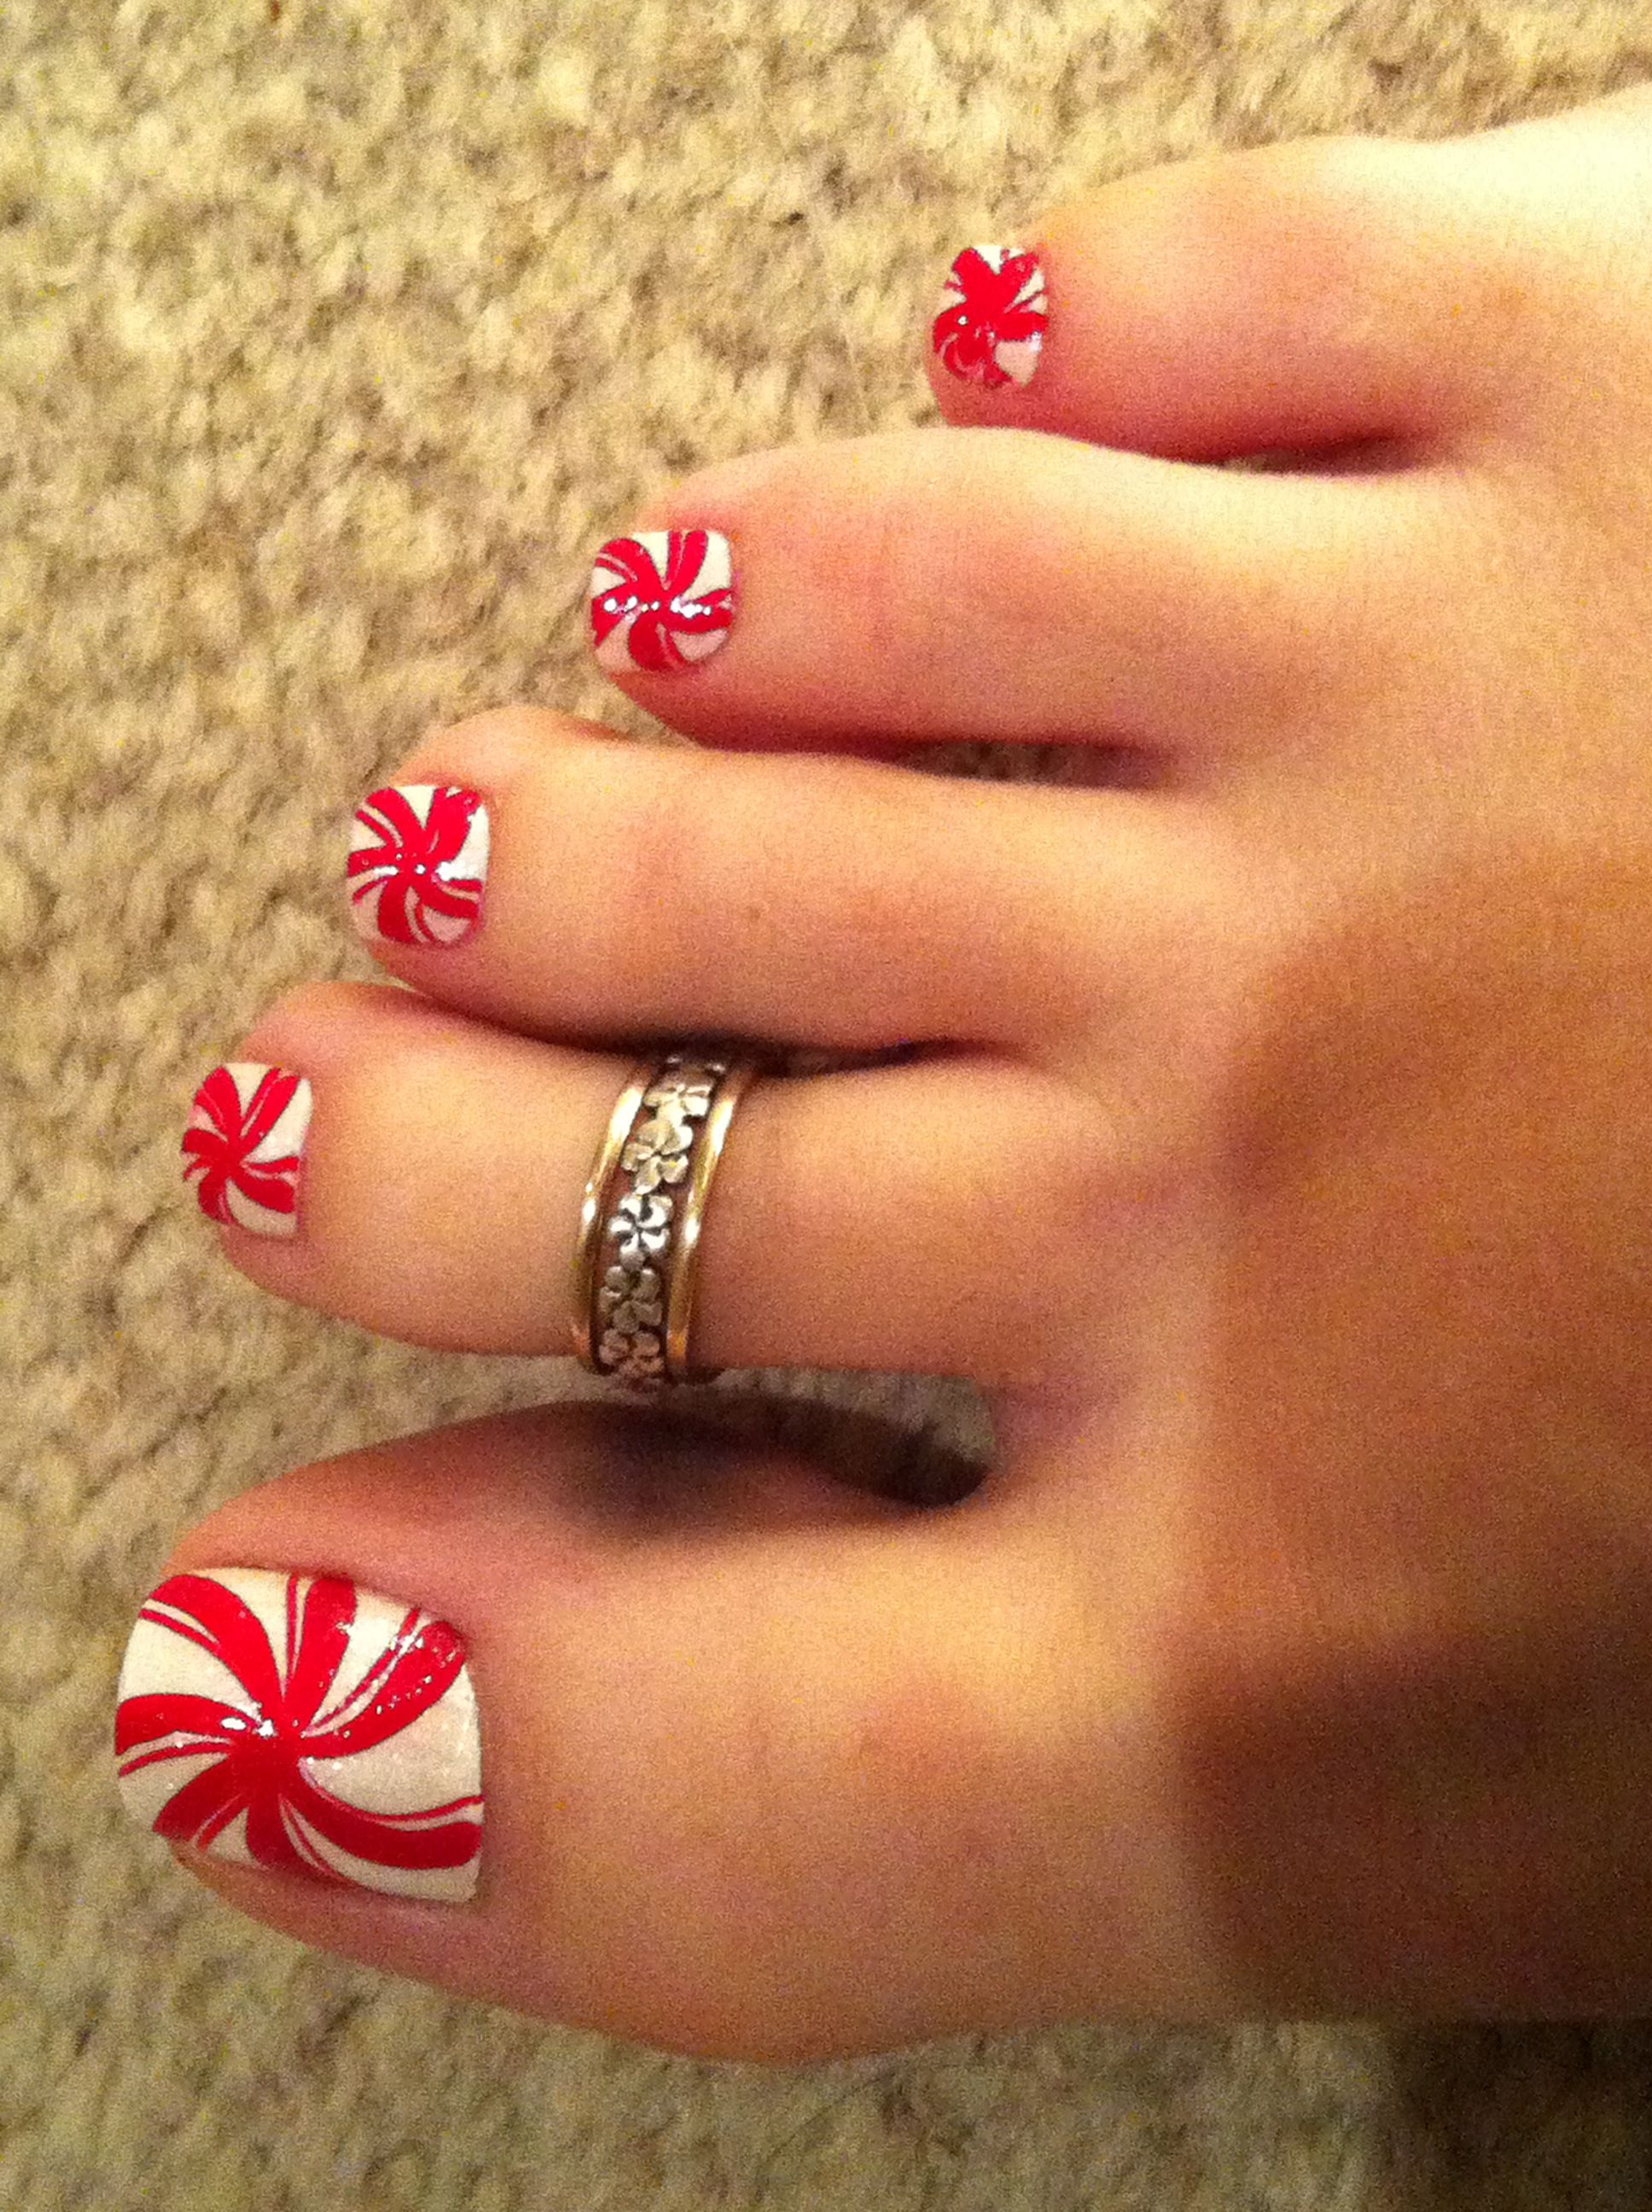 So very cute. great idea for Christmas toes! I <3 [candy cane] design